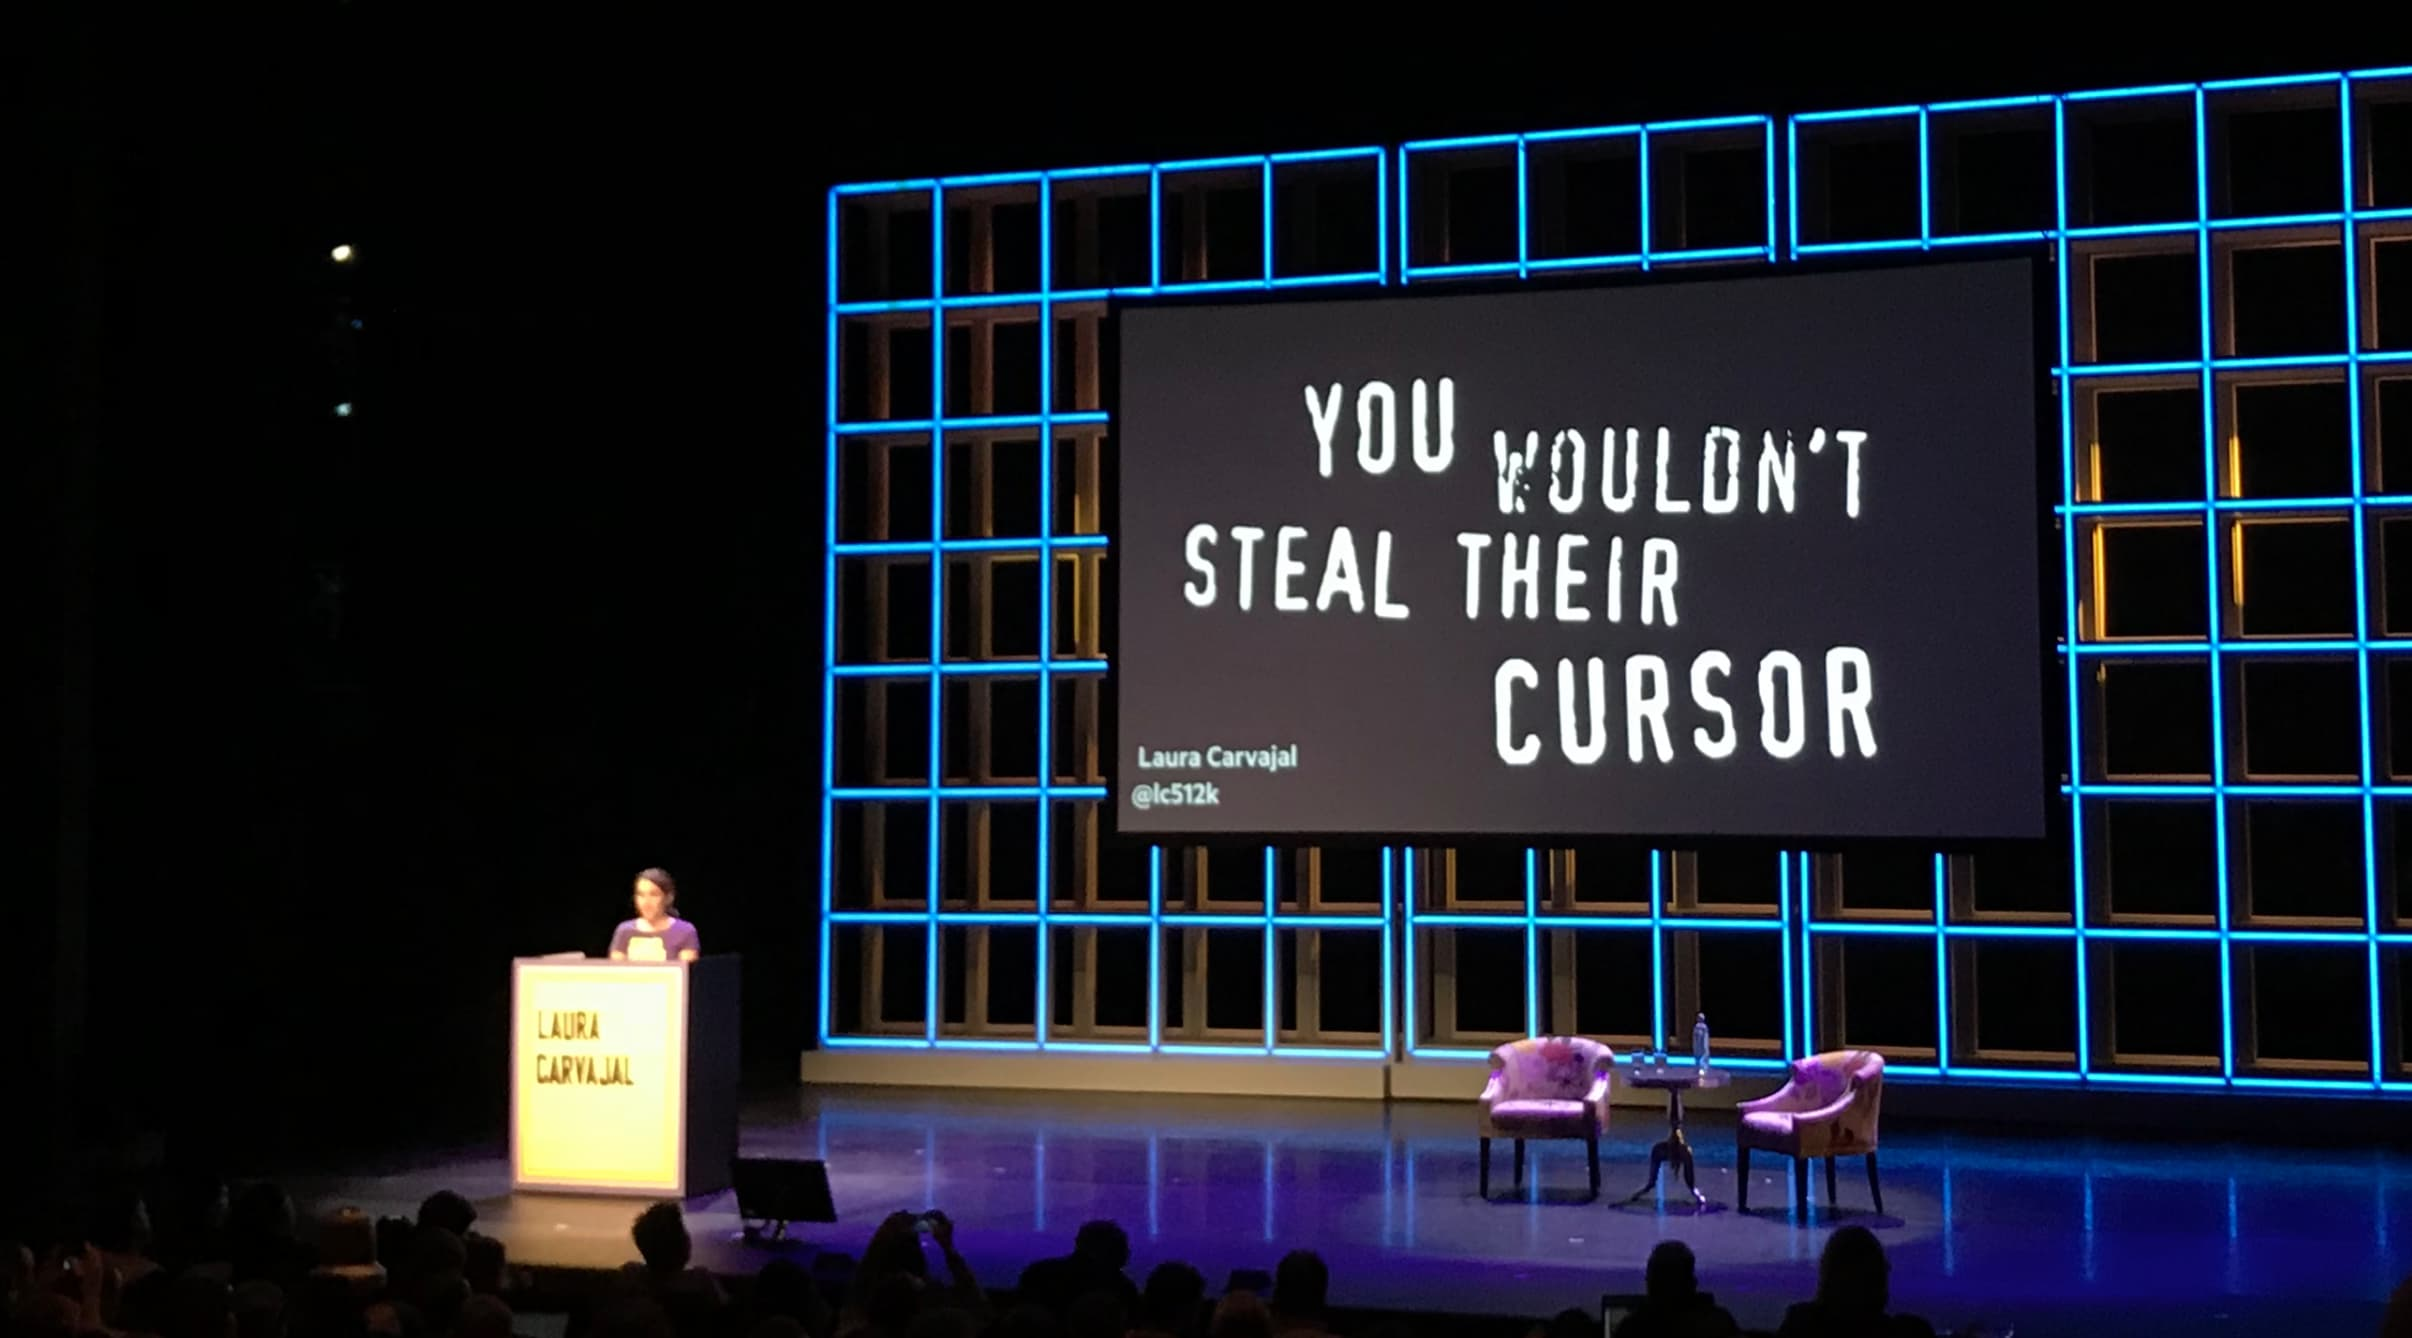 93b18ad8f0e Laura Carvajal with slide: You wouldn't steal their cursor